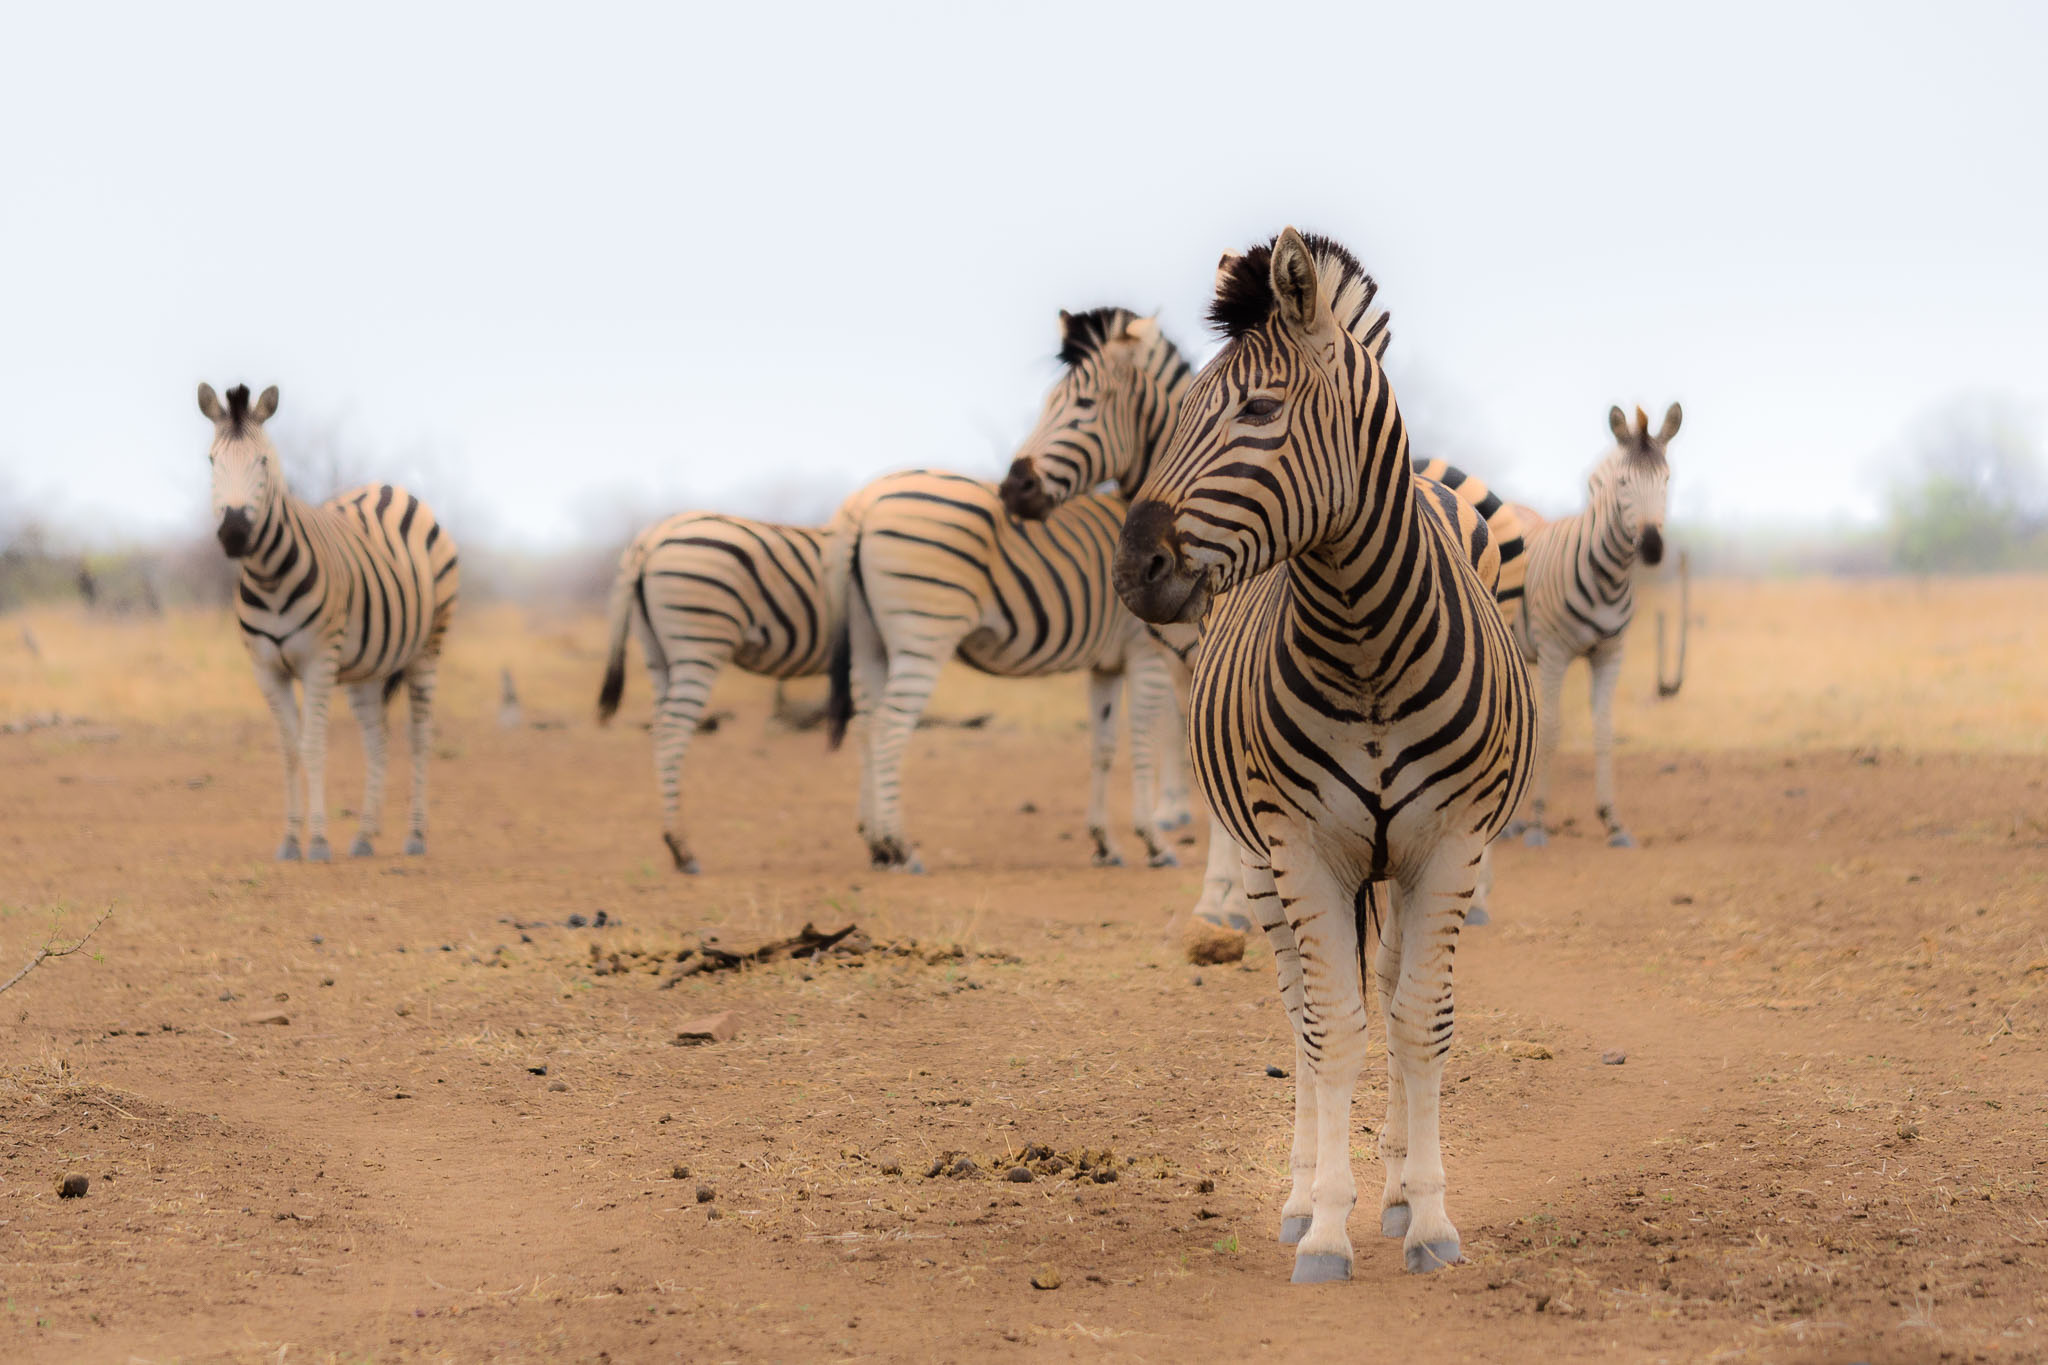 Travelling in Africa just makes everything red. It is such a dusty and red continent. The dry season makes this even worse and a herd of zebras can make quite a dust storm.